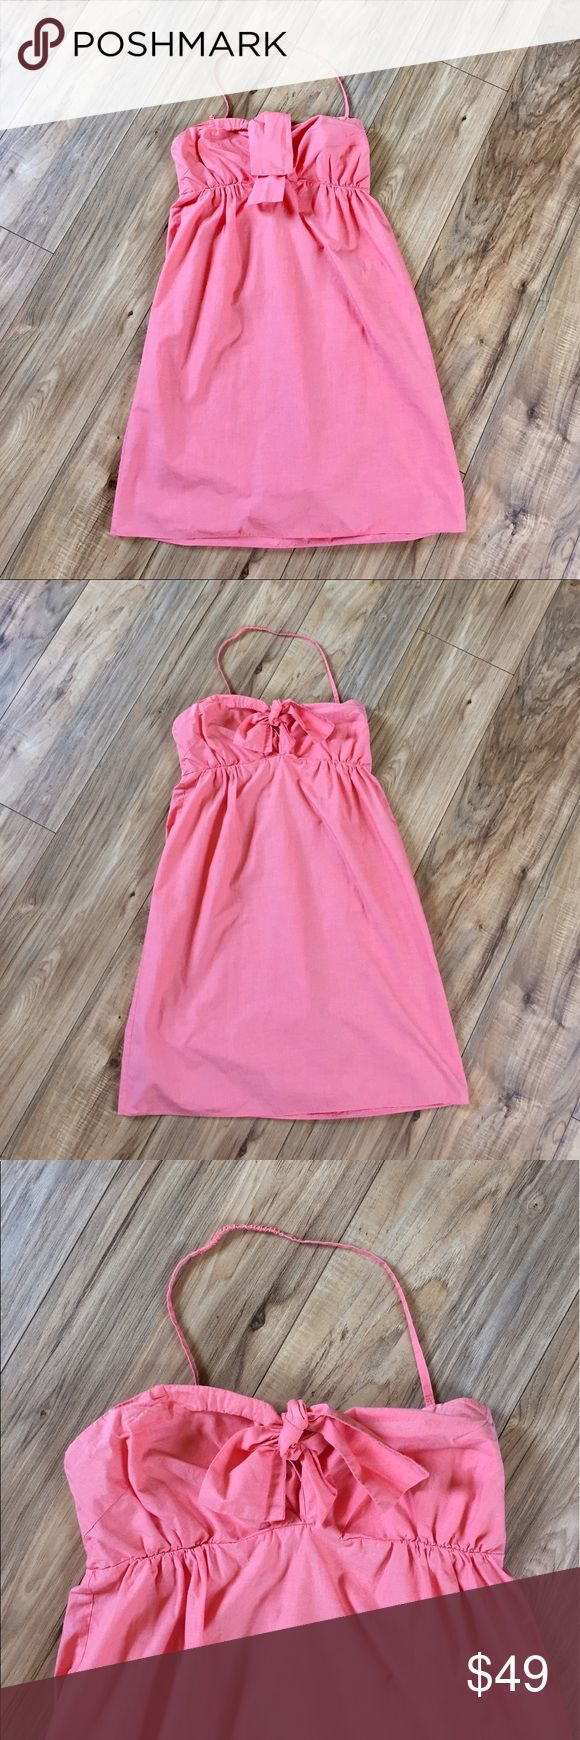 J. Crew convertible strap light coral sundress J. Crew convertible light coral sundress. 100% cotton is machine washable and super lightweight. Halter strap is removable for a strapless look. Worn and washed one time - EUC! J. Crew Dresses Midi